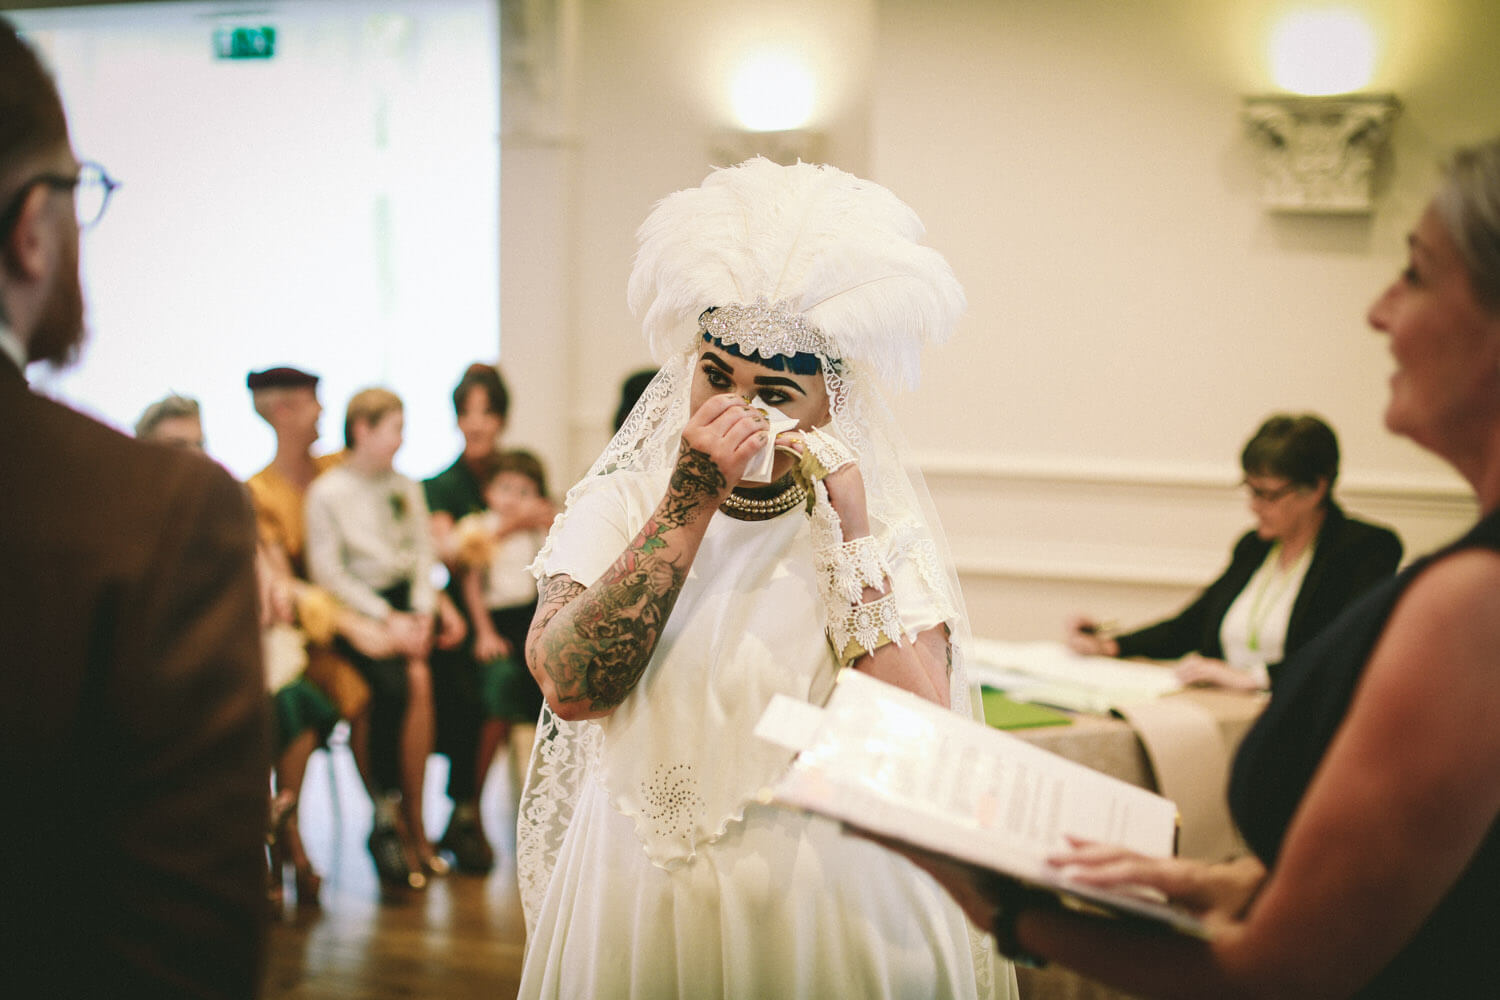 Vintage bride crying during ceremony